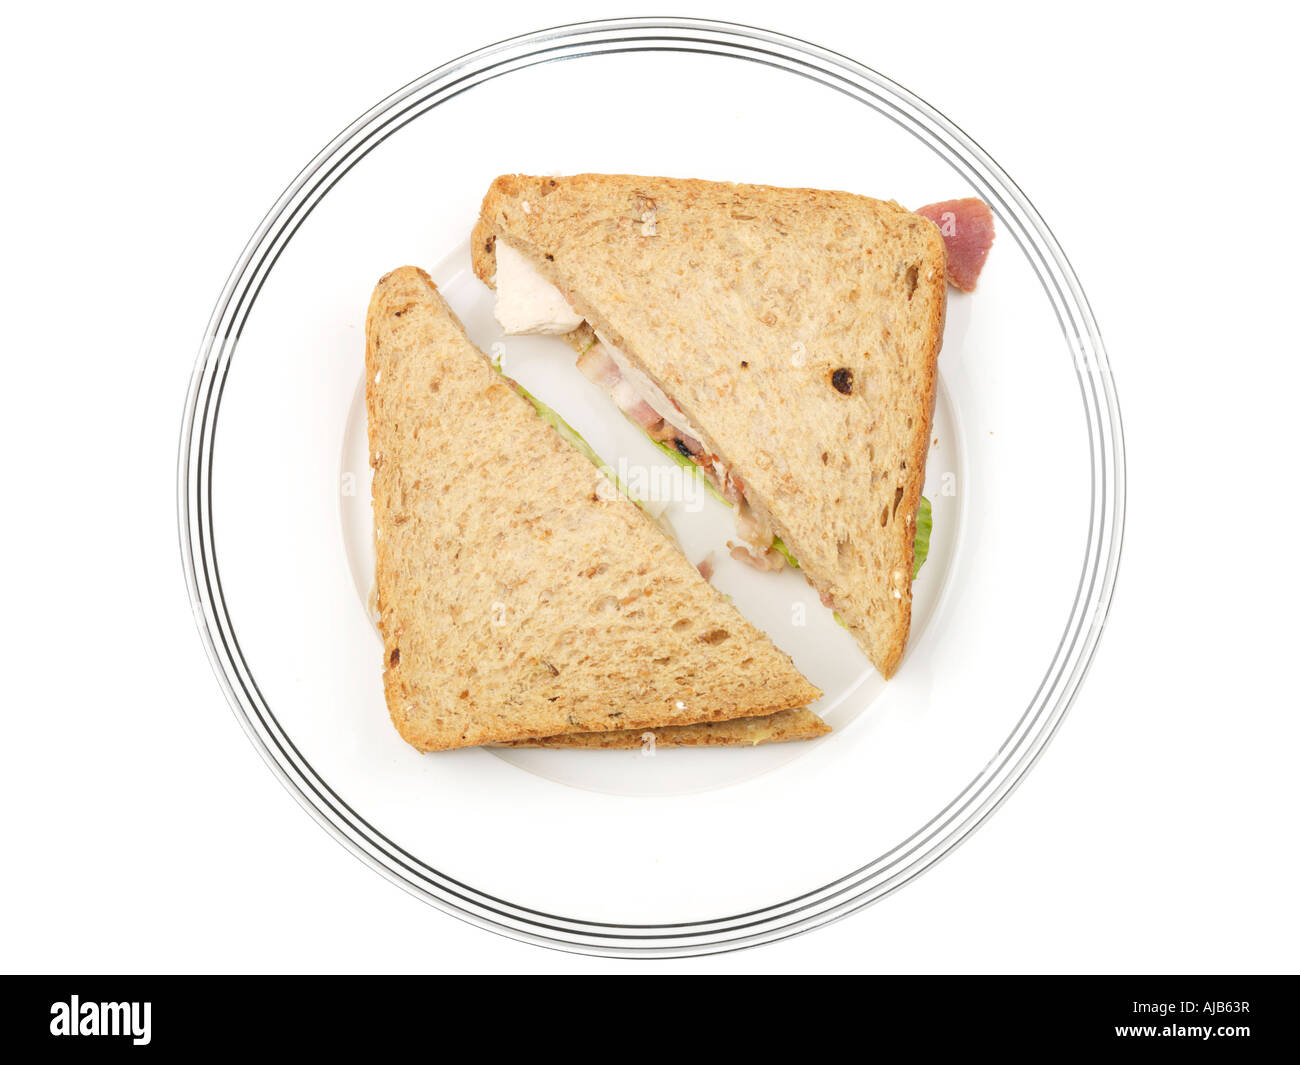 Chicken Bacon and Lettuce Sandwich - Stock Image